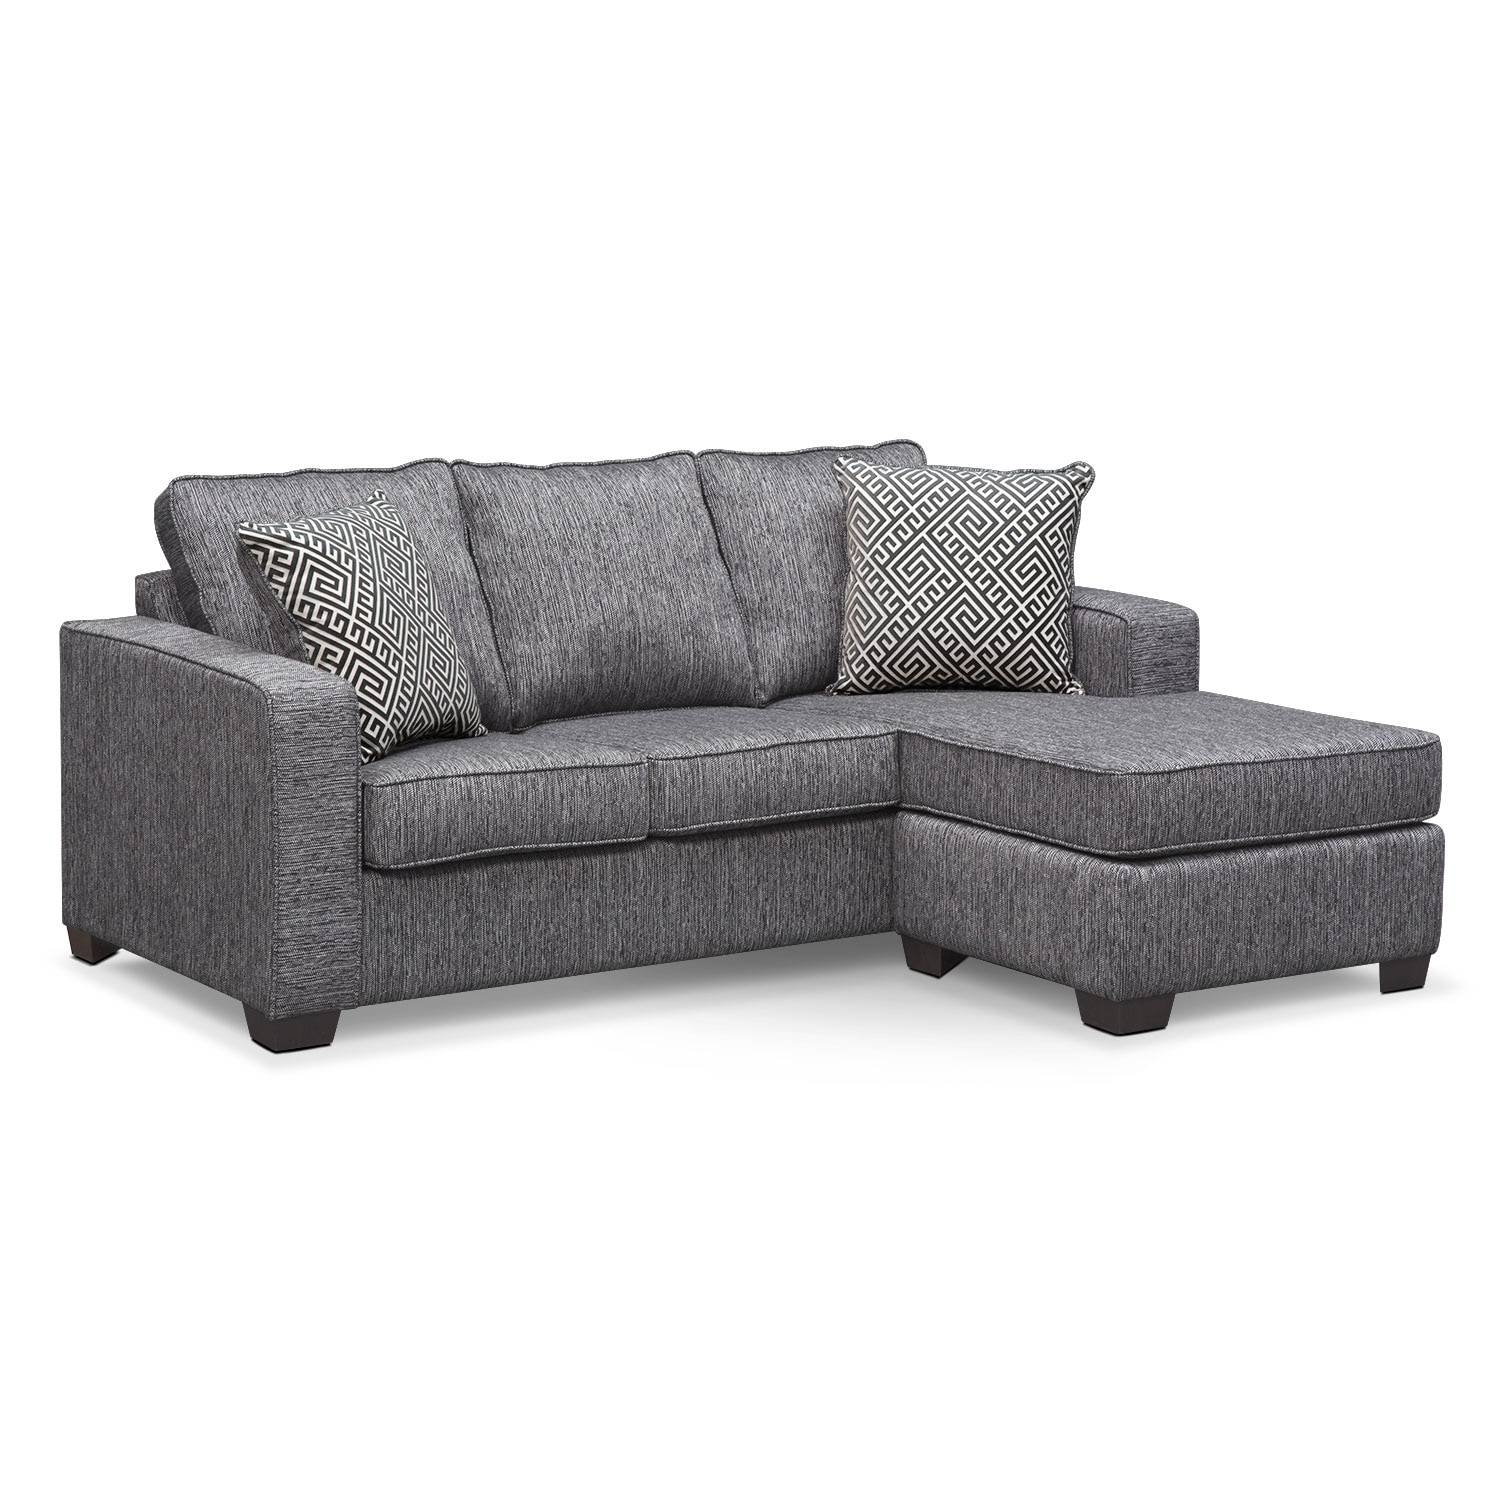 Sleeper Sofas | Value City Furniture | Value City Furniture pertaining to Sofa Sleepers Queen Size (Image 16 of 30)